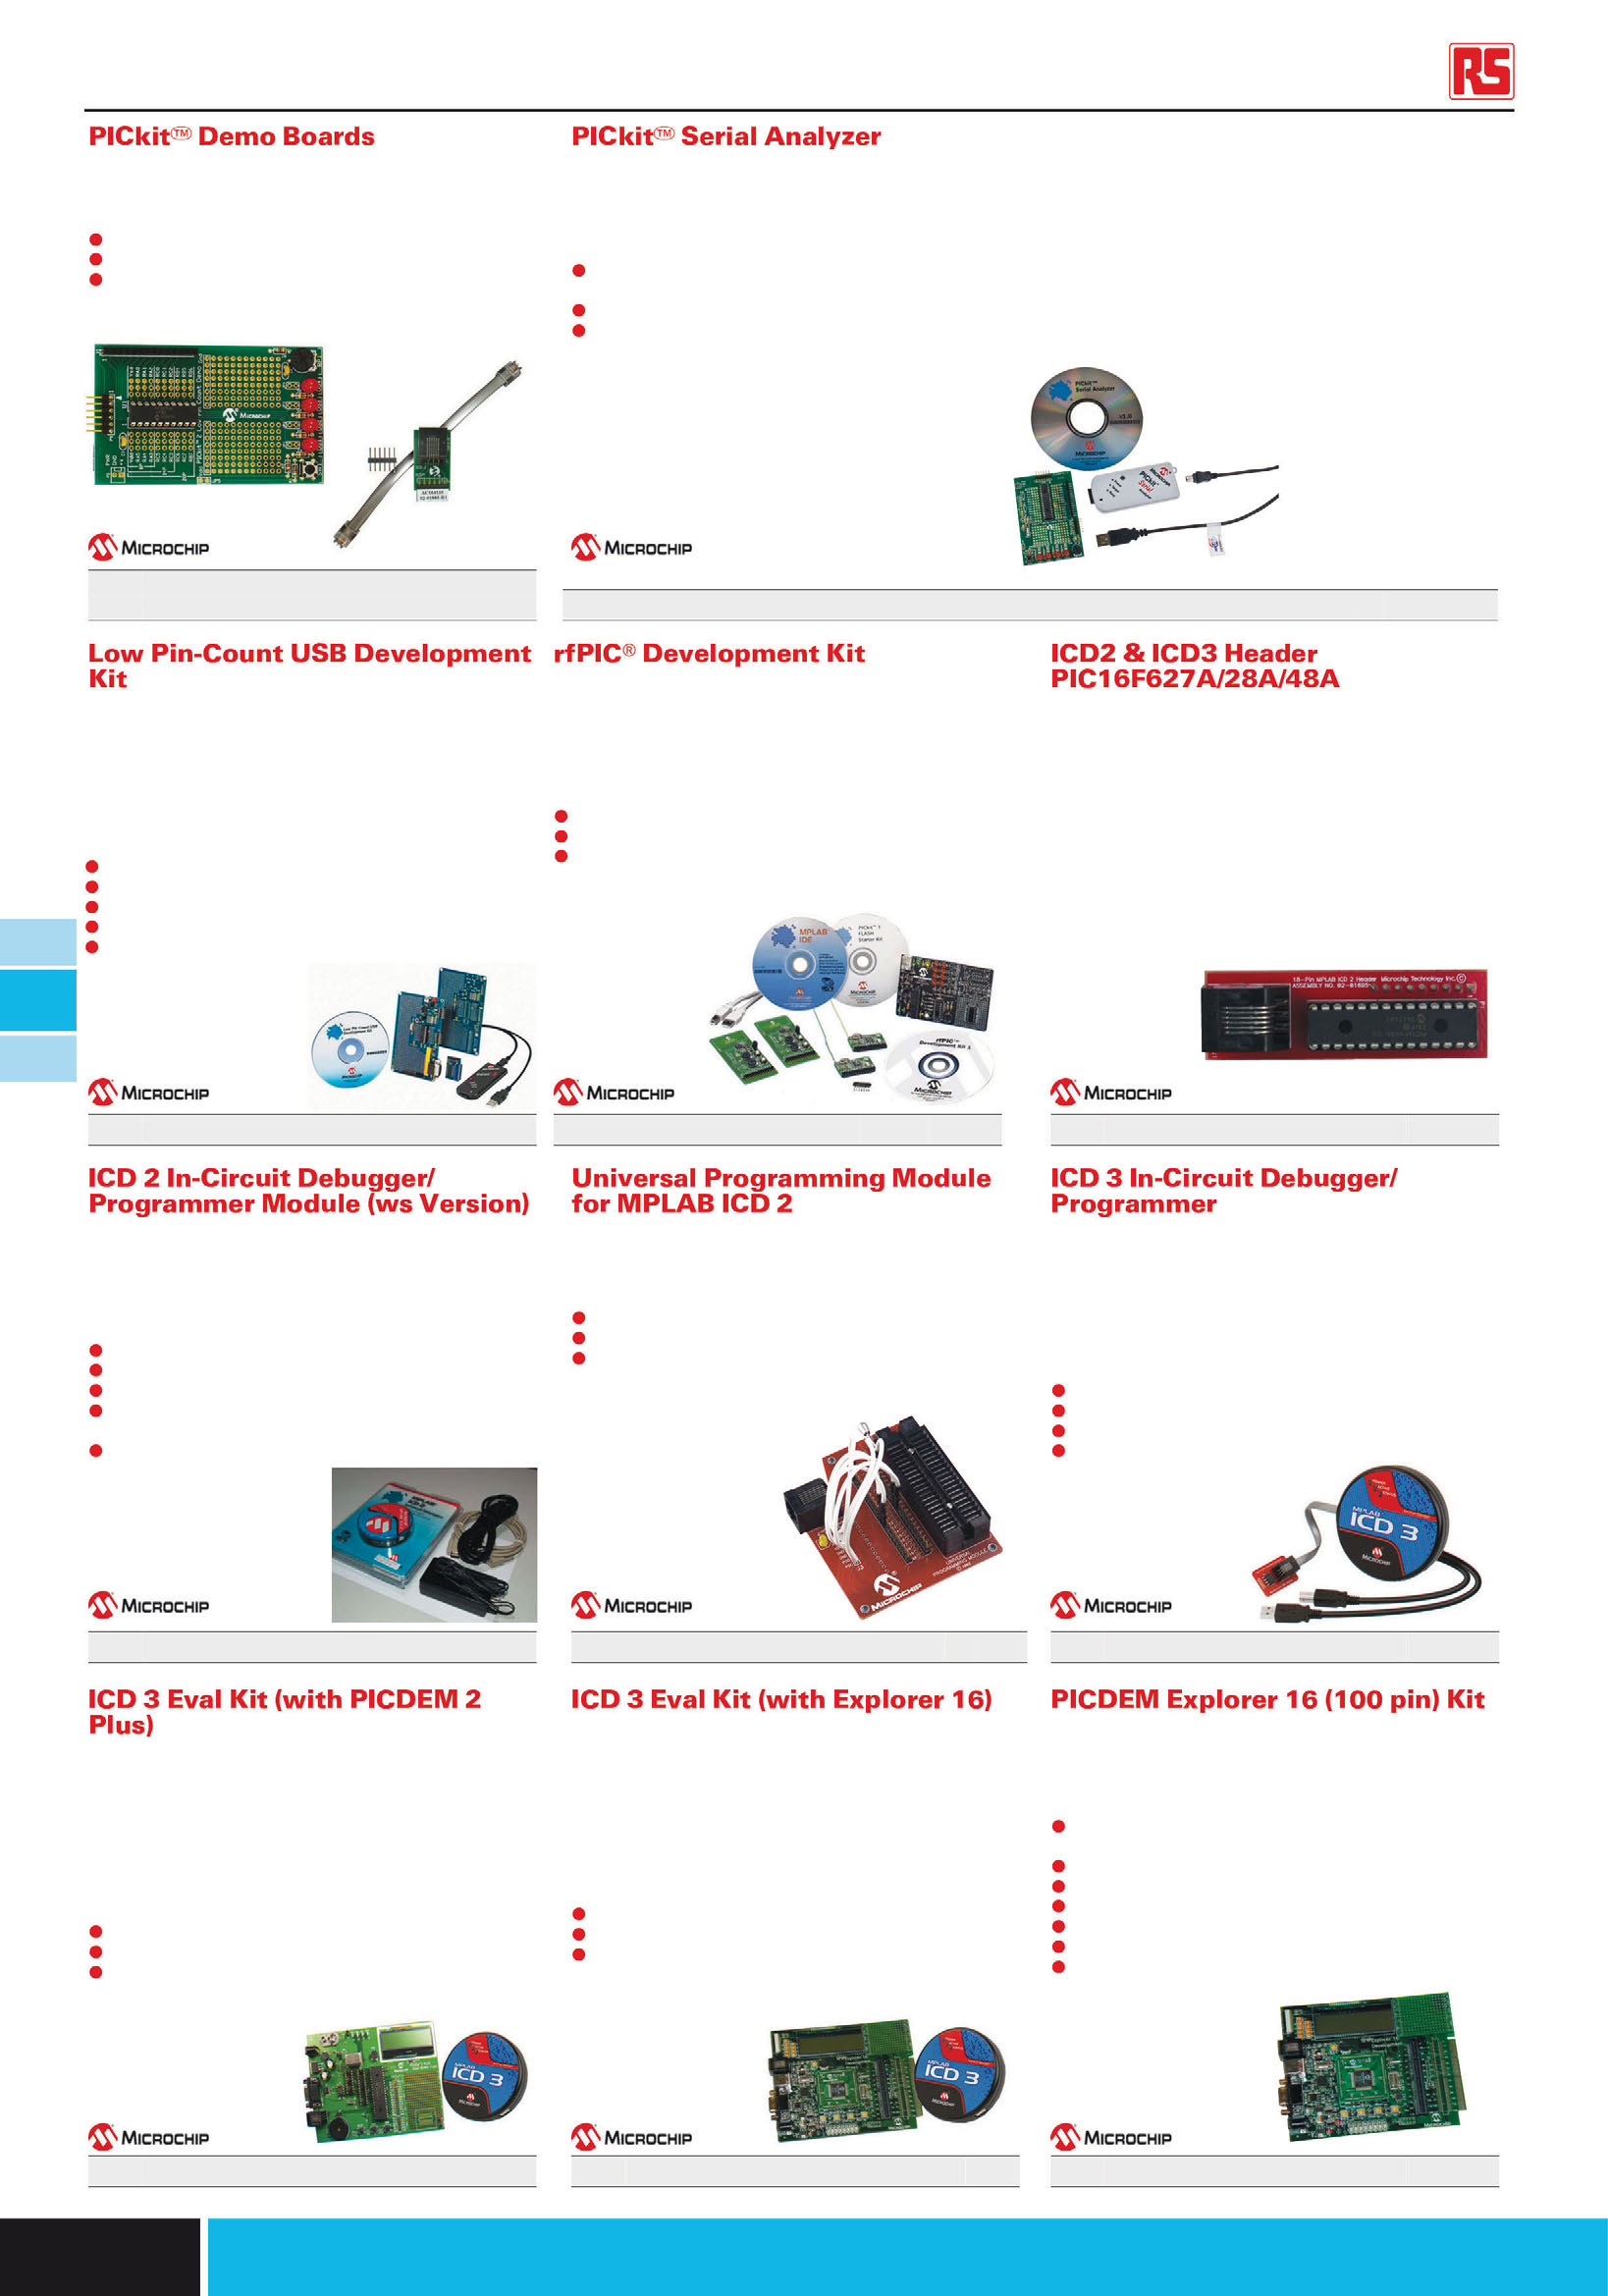 Semiconductors Memory Micros Embedded Computing Peripherals Circuitdiagramtointerfaceuartwithpic16f877aprimer On Line Rssingaporecom Demonstration Boards For Various Pic Microcontrollers Designed To